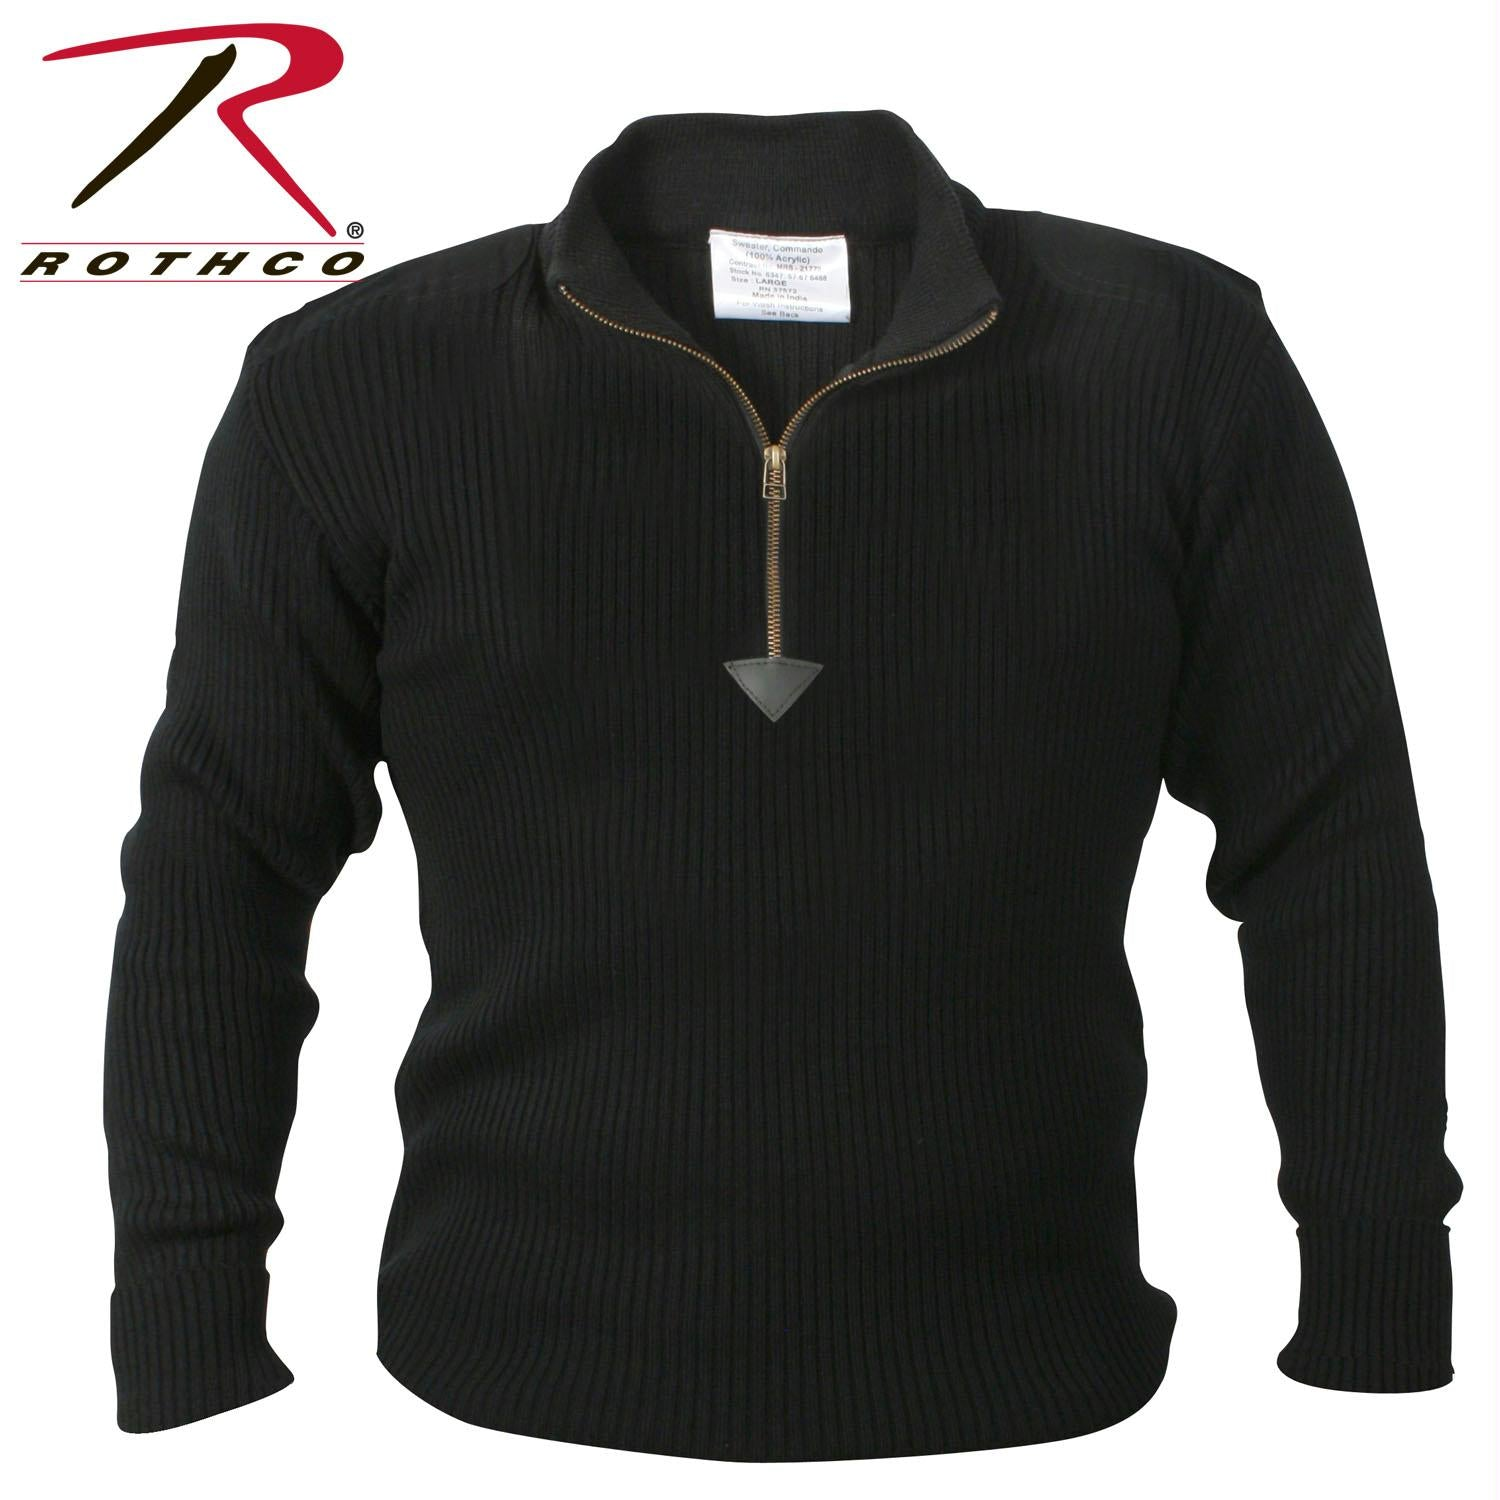 Rothco Quarter Zip Acrylic Commando Sweater - Black / S